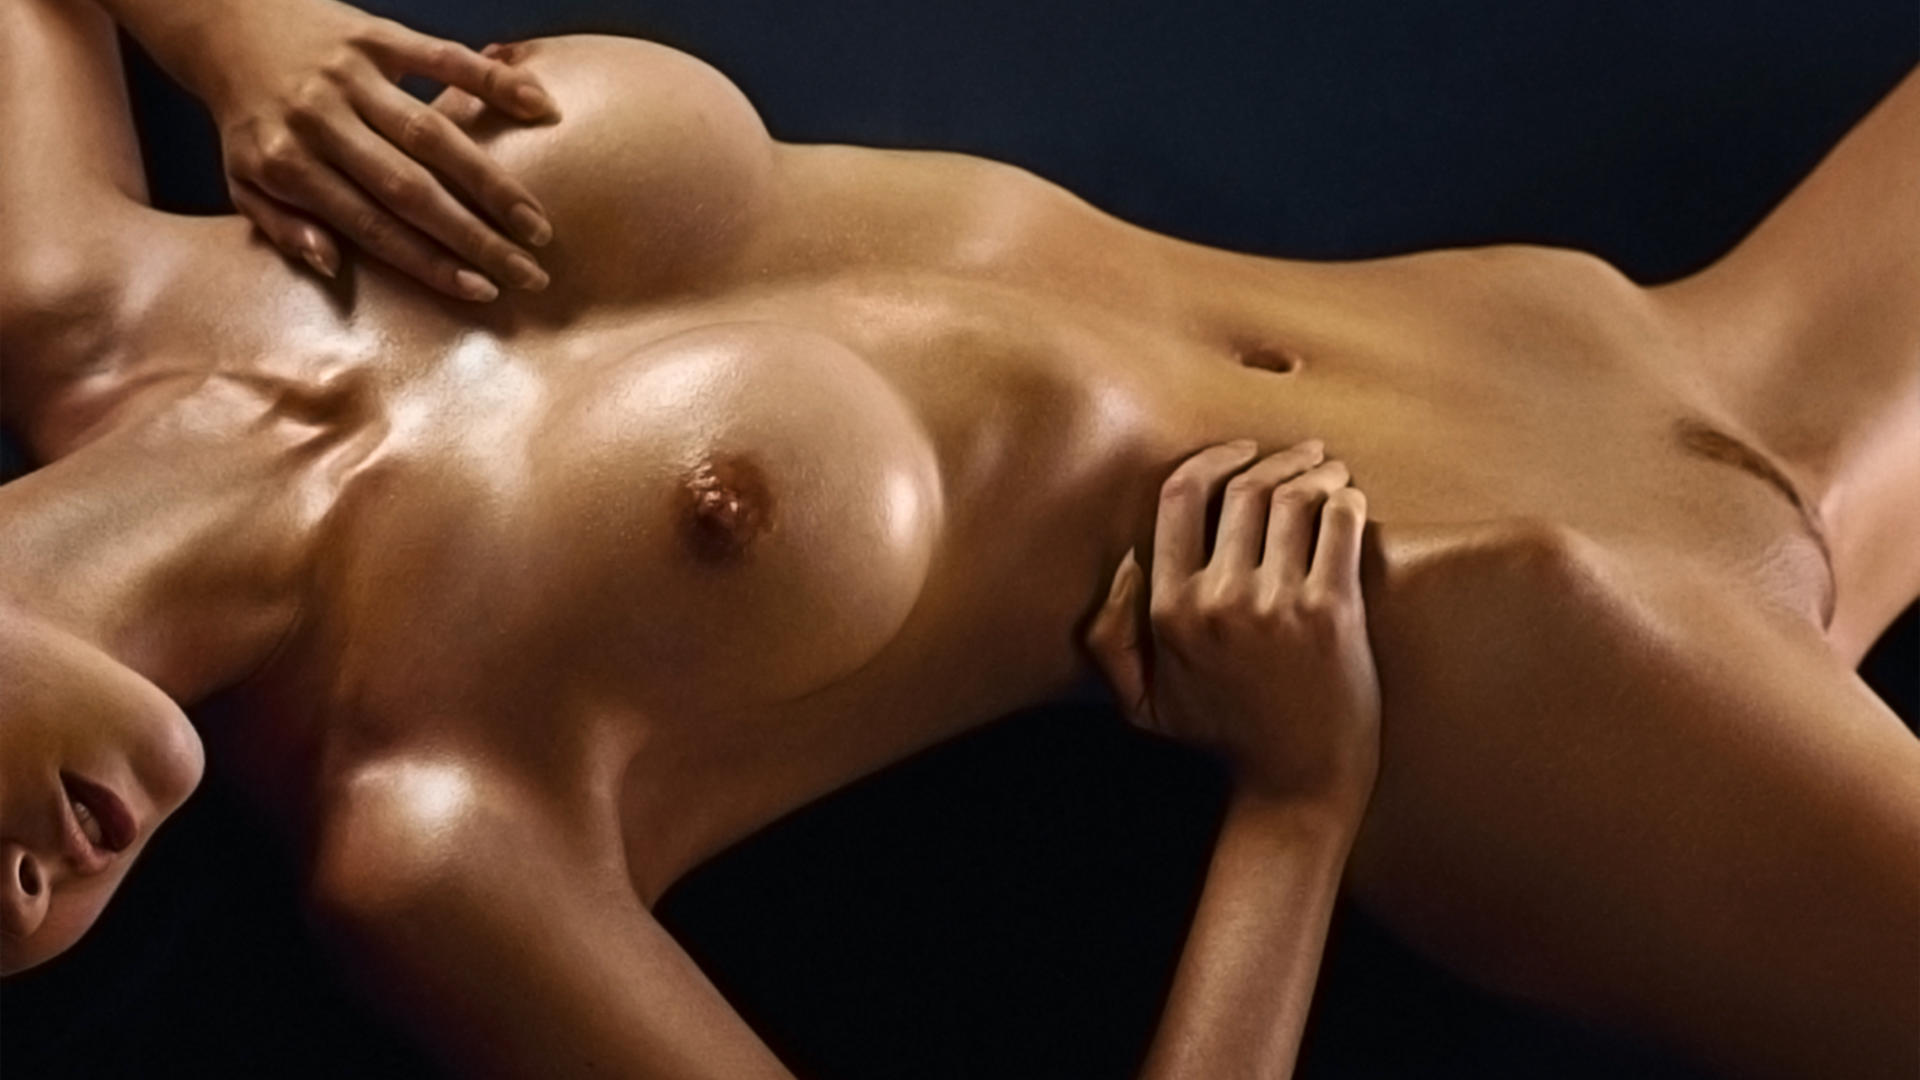 Wallpaper 1920x1080 naked 59360 nude